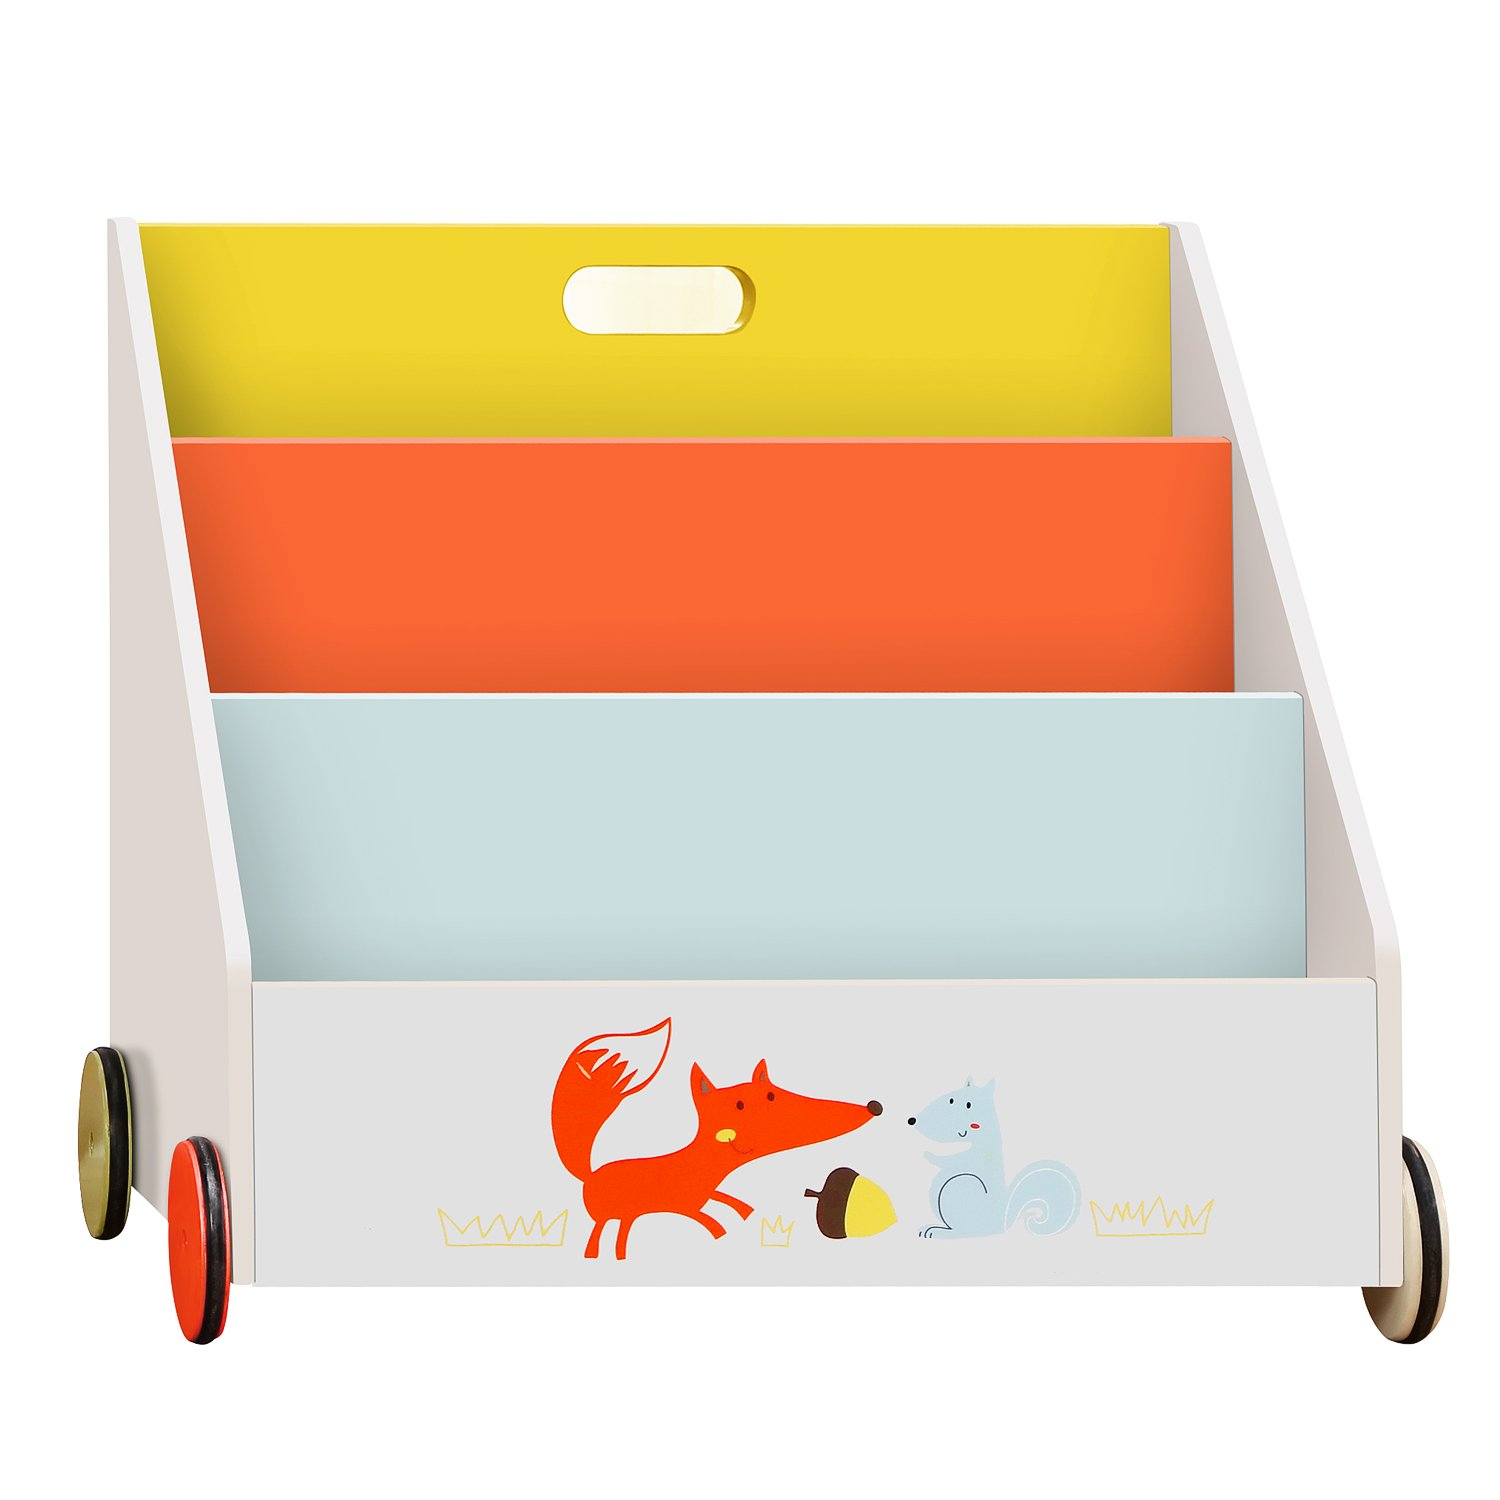 labebe Kid Bookshelf with Wheels, Orange Fox Wood Bookshelf for Kids 1 Year Up, Baby Bookshelf/Child Bookshelf/Toddler Bookshelf Kid Book Display/Bookshelf Kid Wooden/Book Display Stand Kid/Book Rack